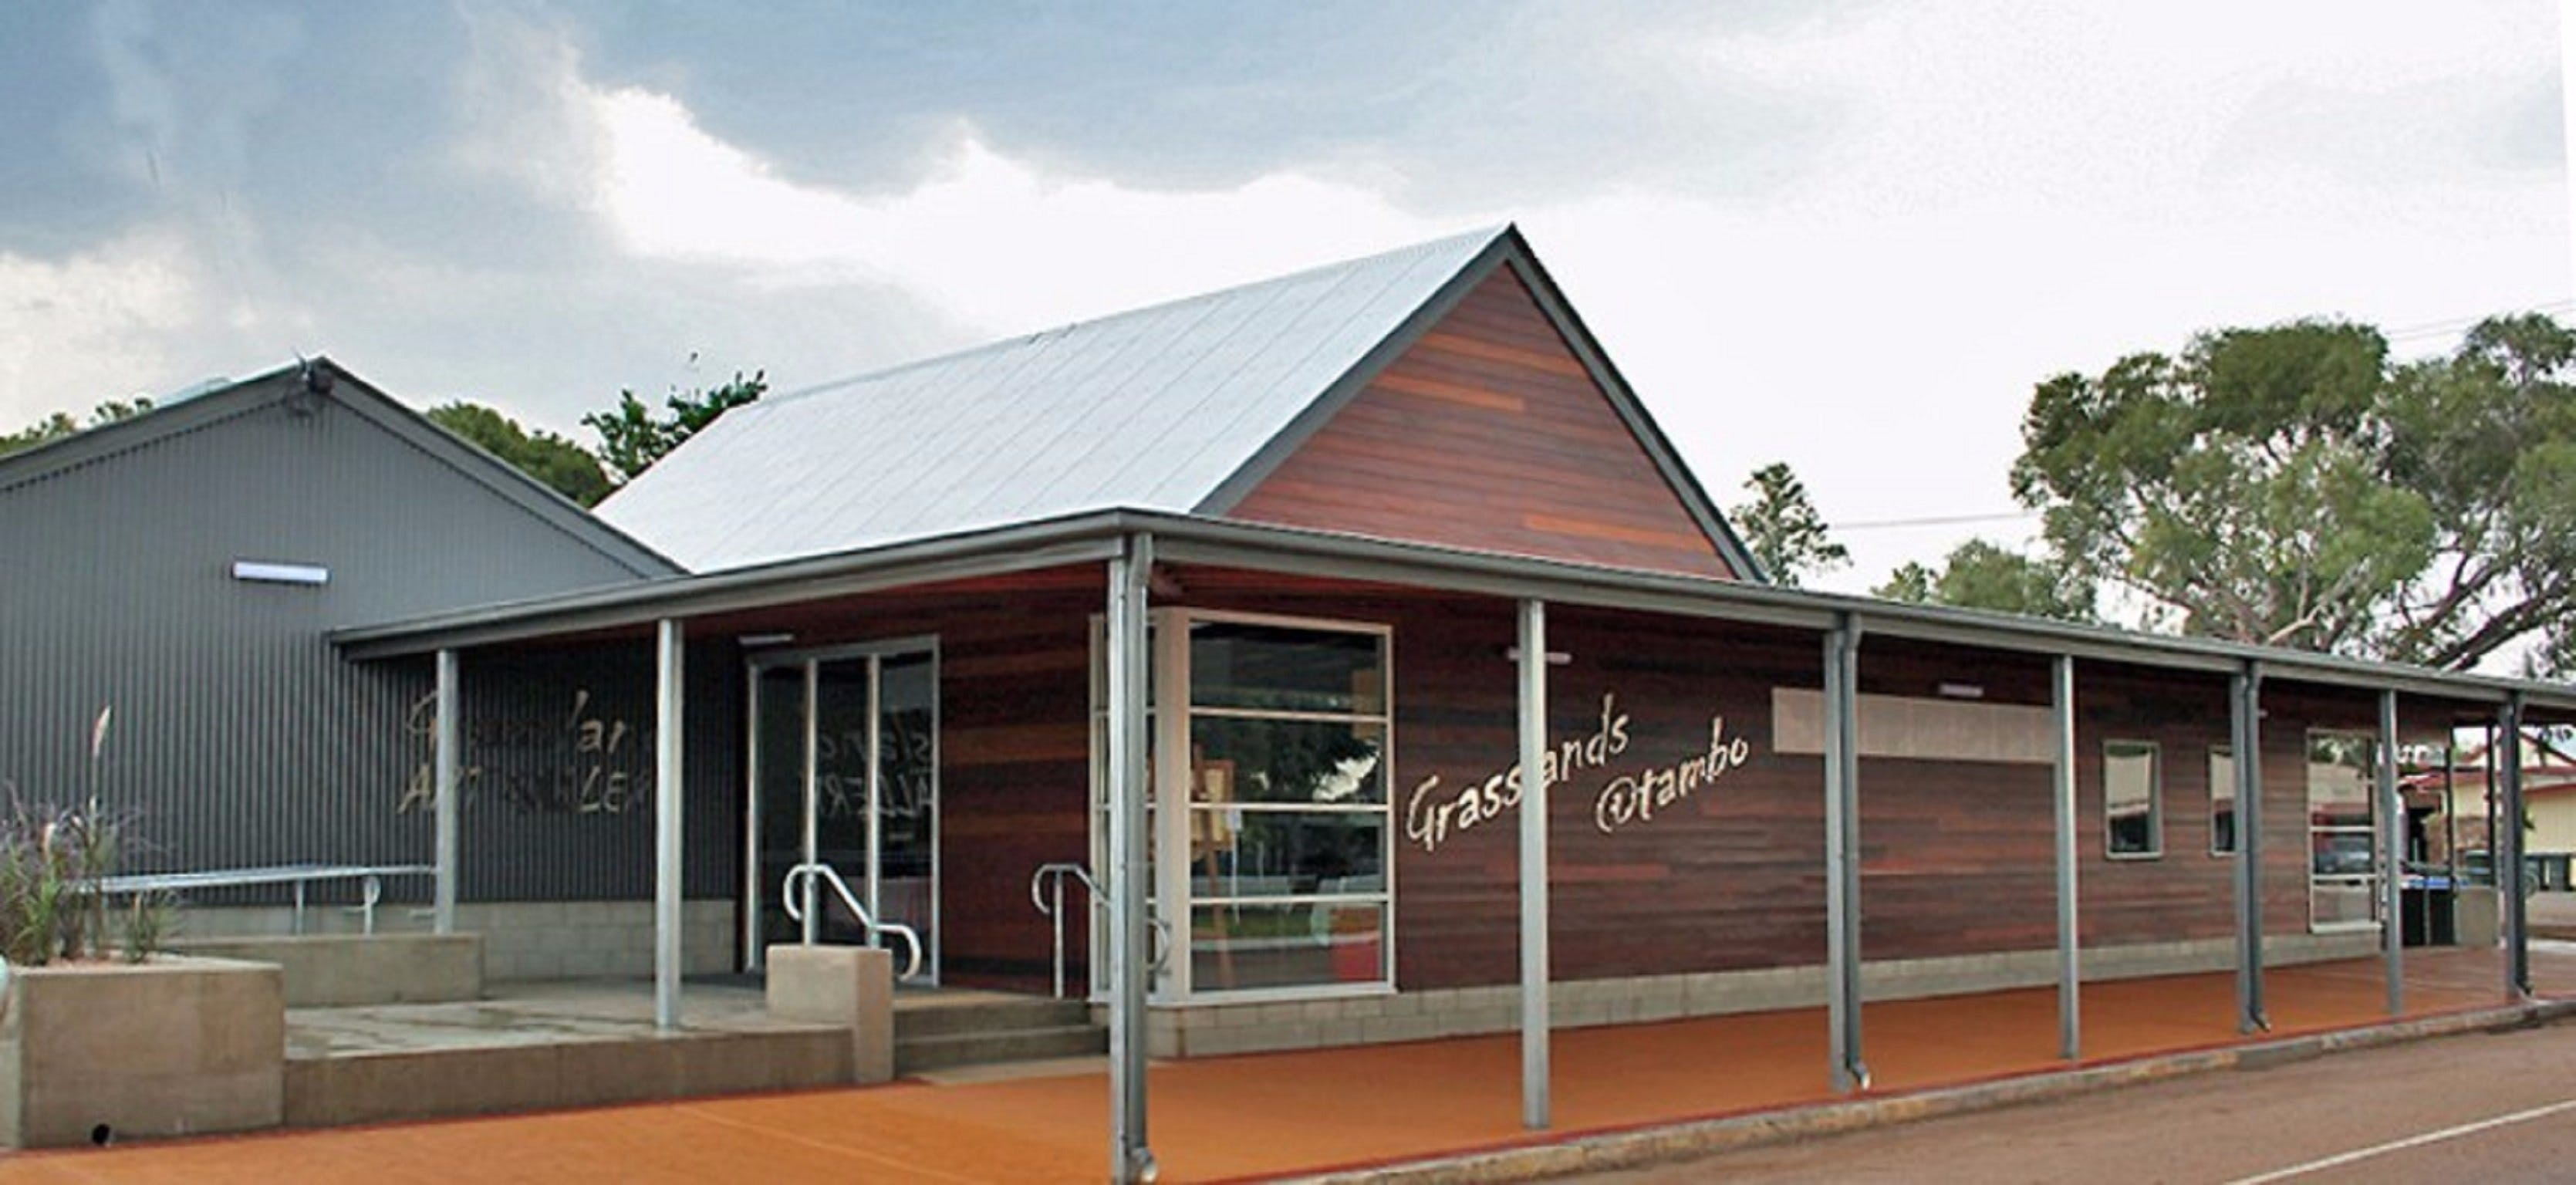 Grassland Art Gallery - Accommodation Daintree